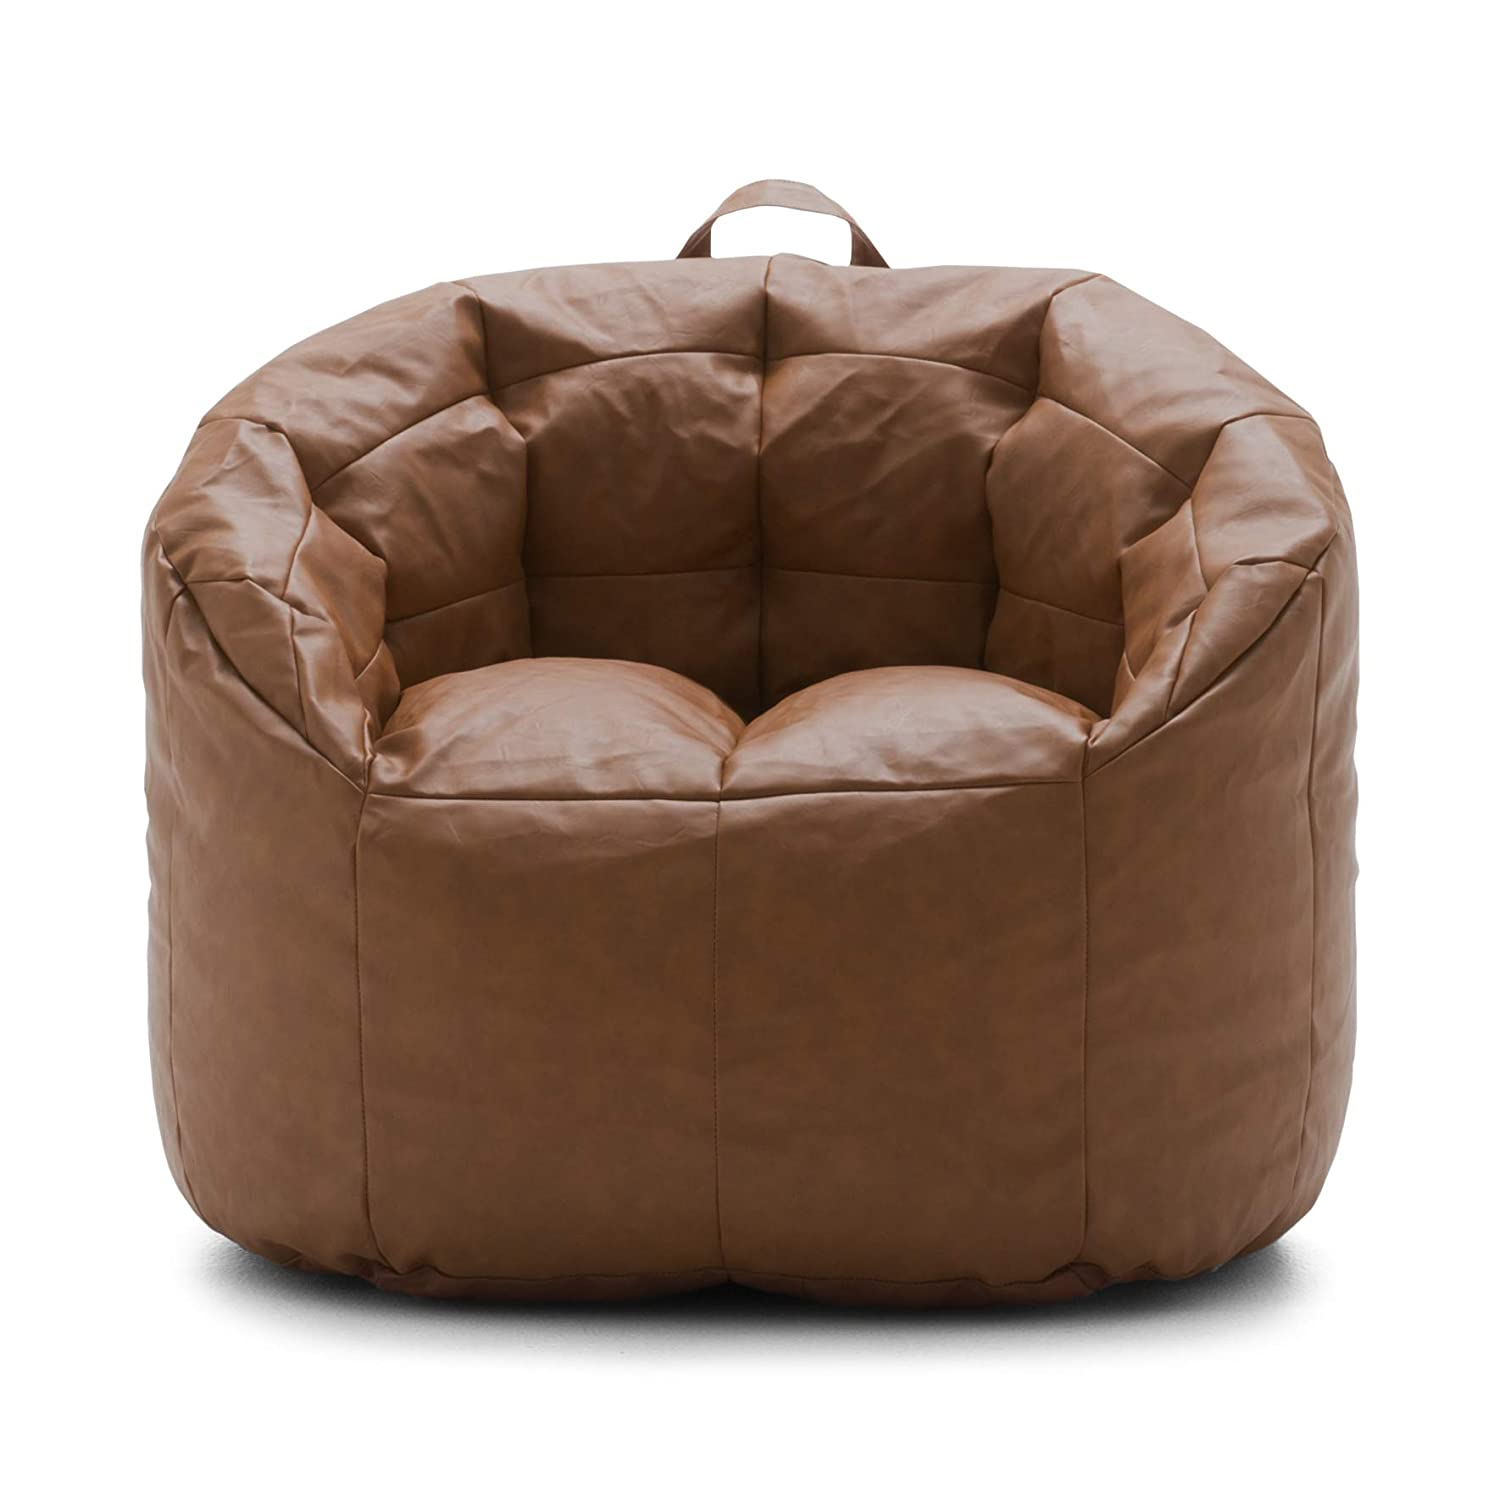 Big Joe Lux Siena, Montana Leather Caramel Bean Bag, Caramel, Caramel